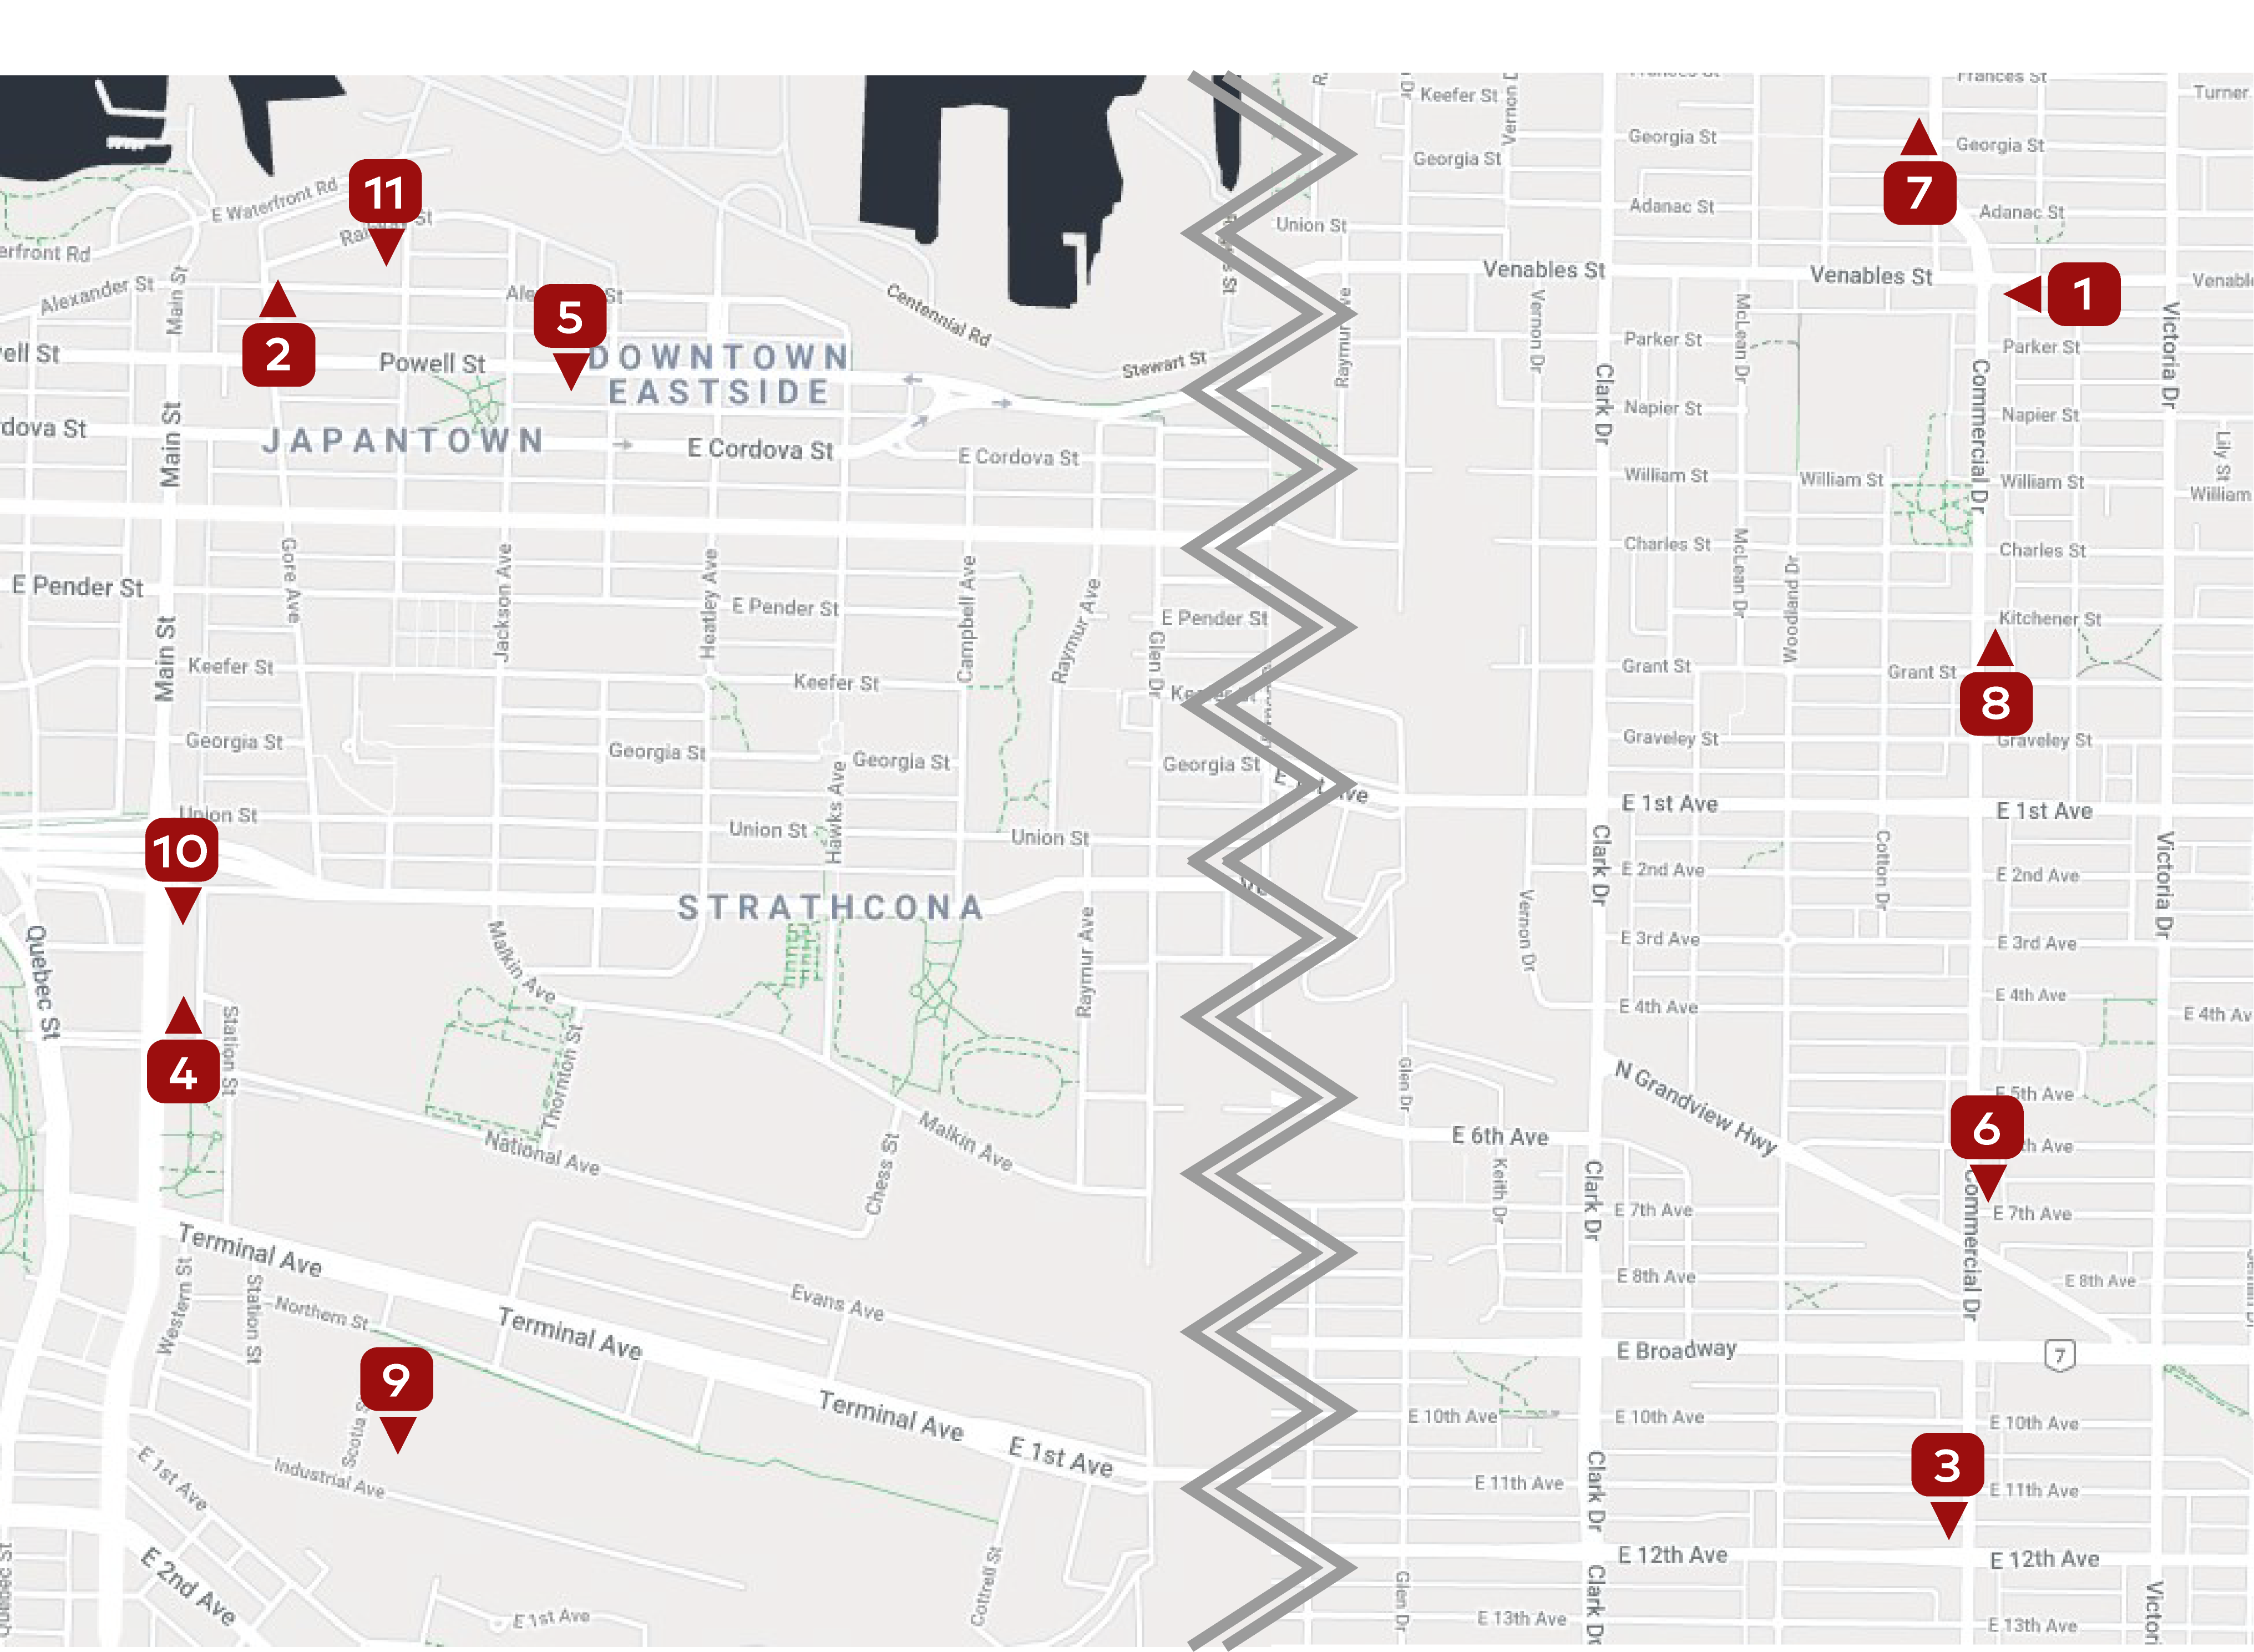 Strathcona & Commercial Dr Map